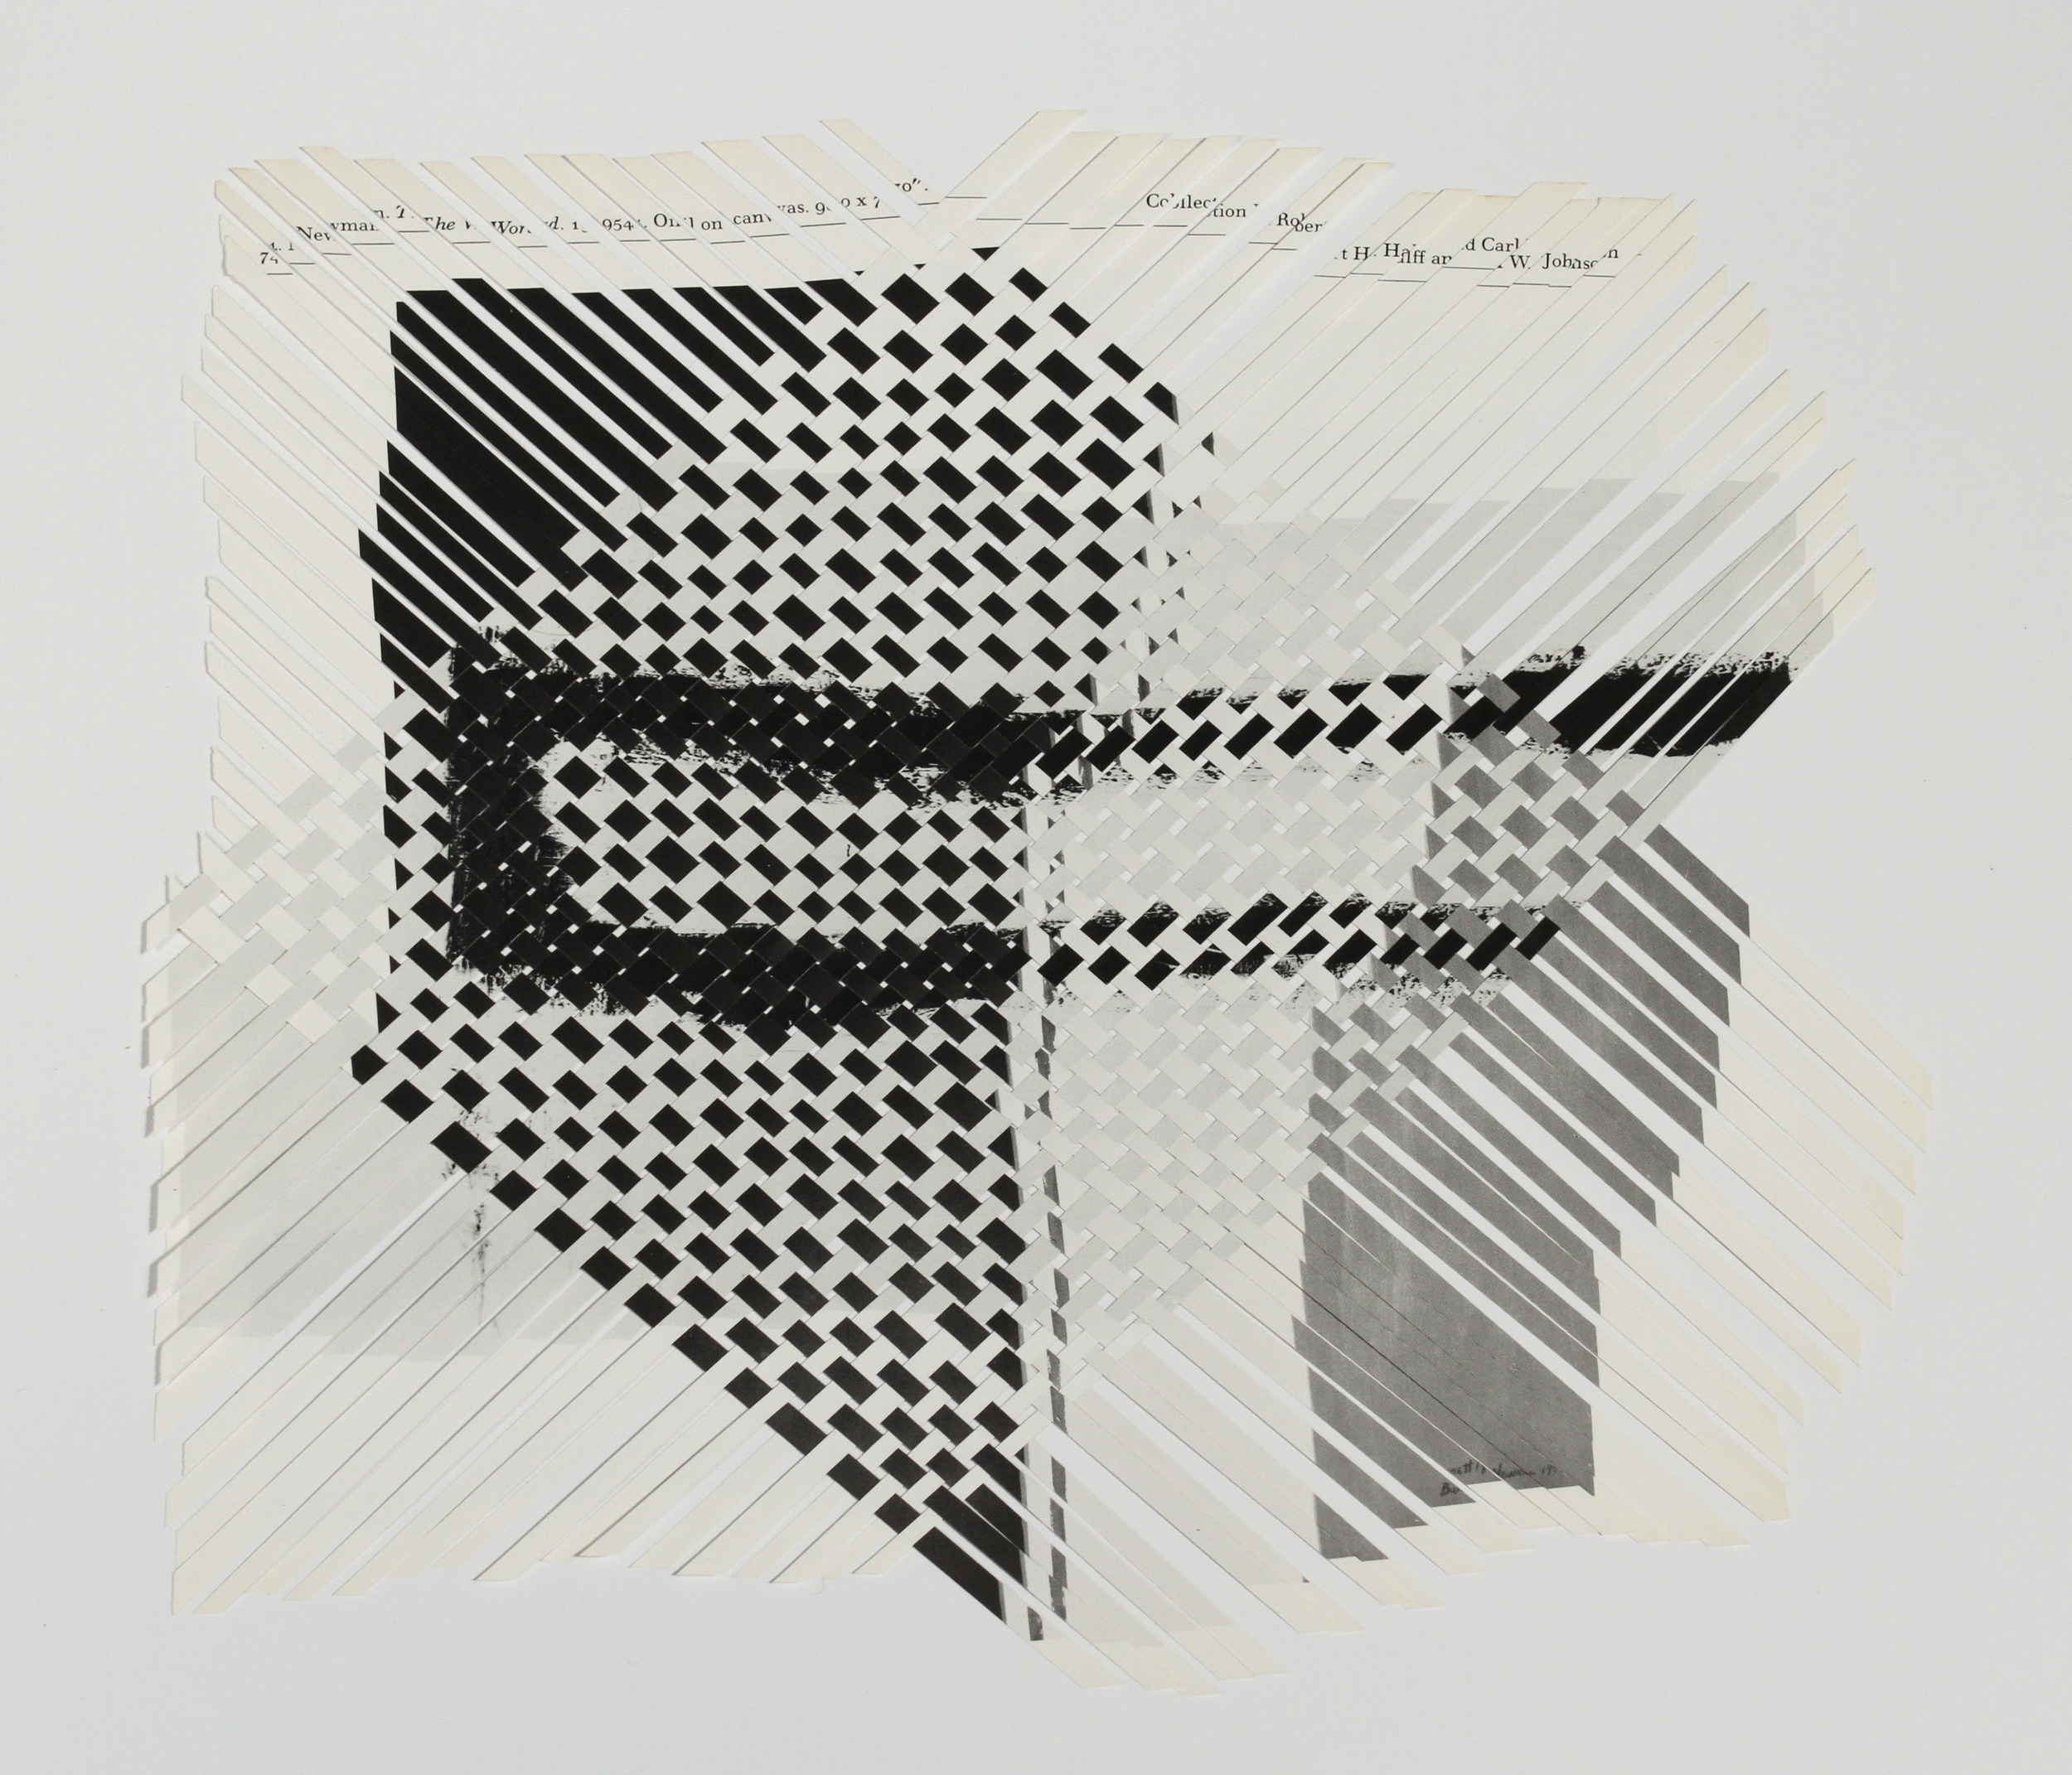 newmanklein (black and white), 2013, paper weaving, 10 x 10